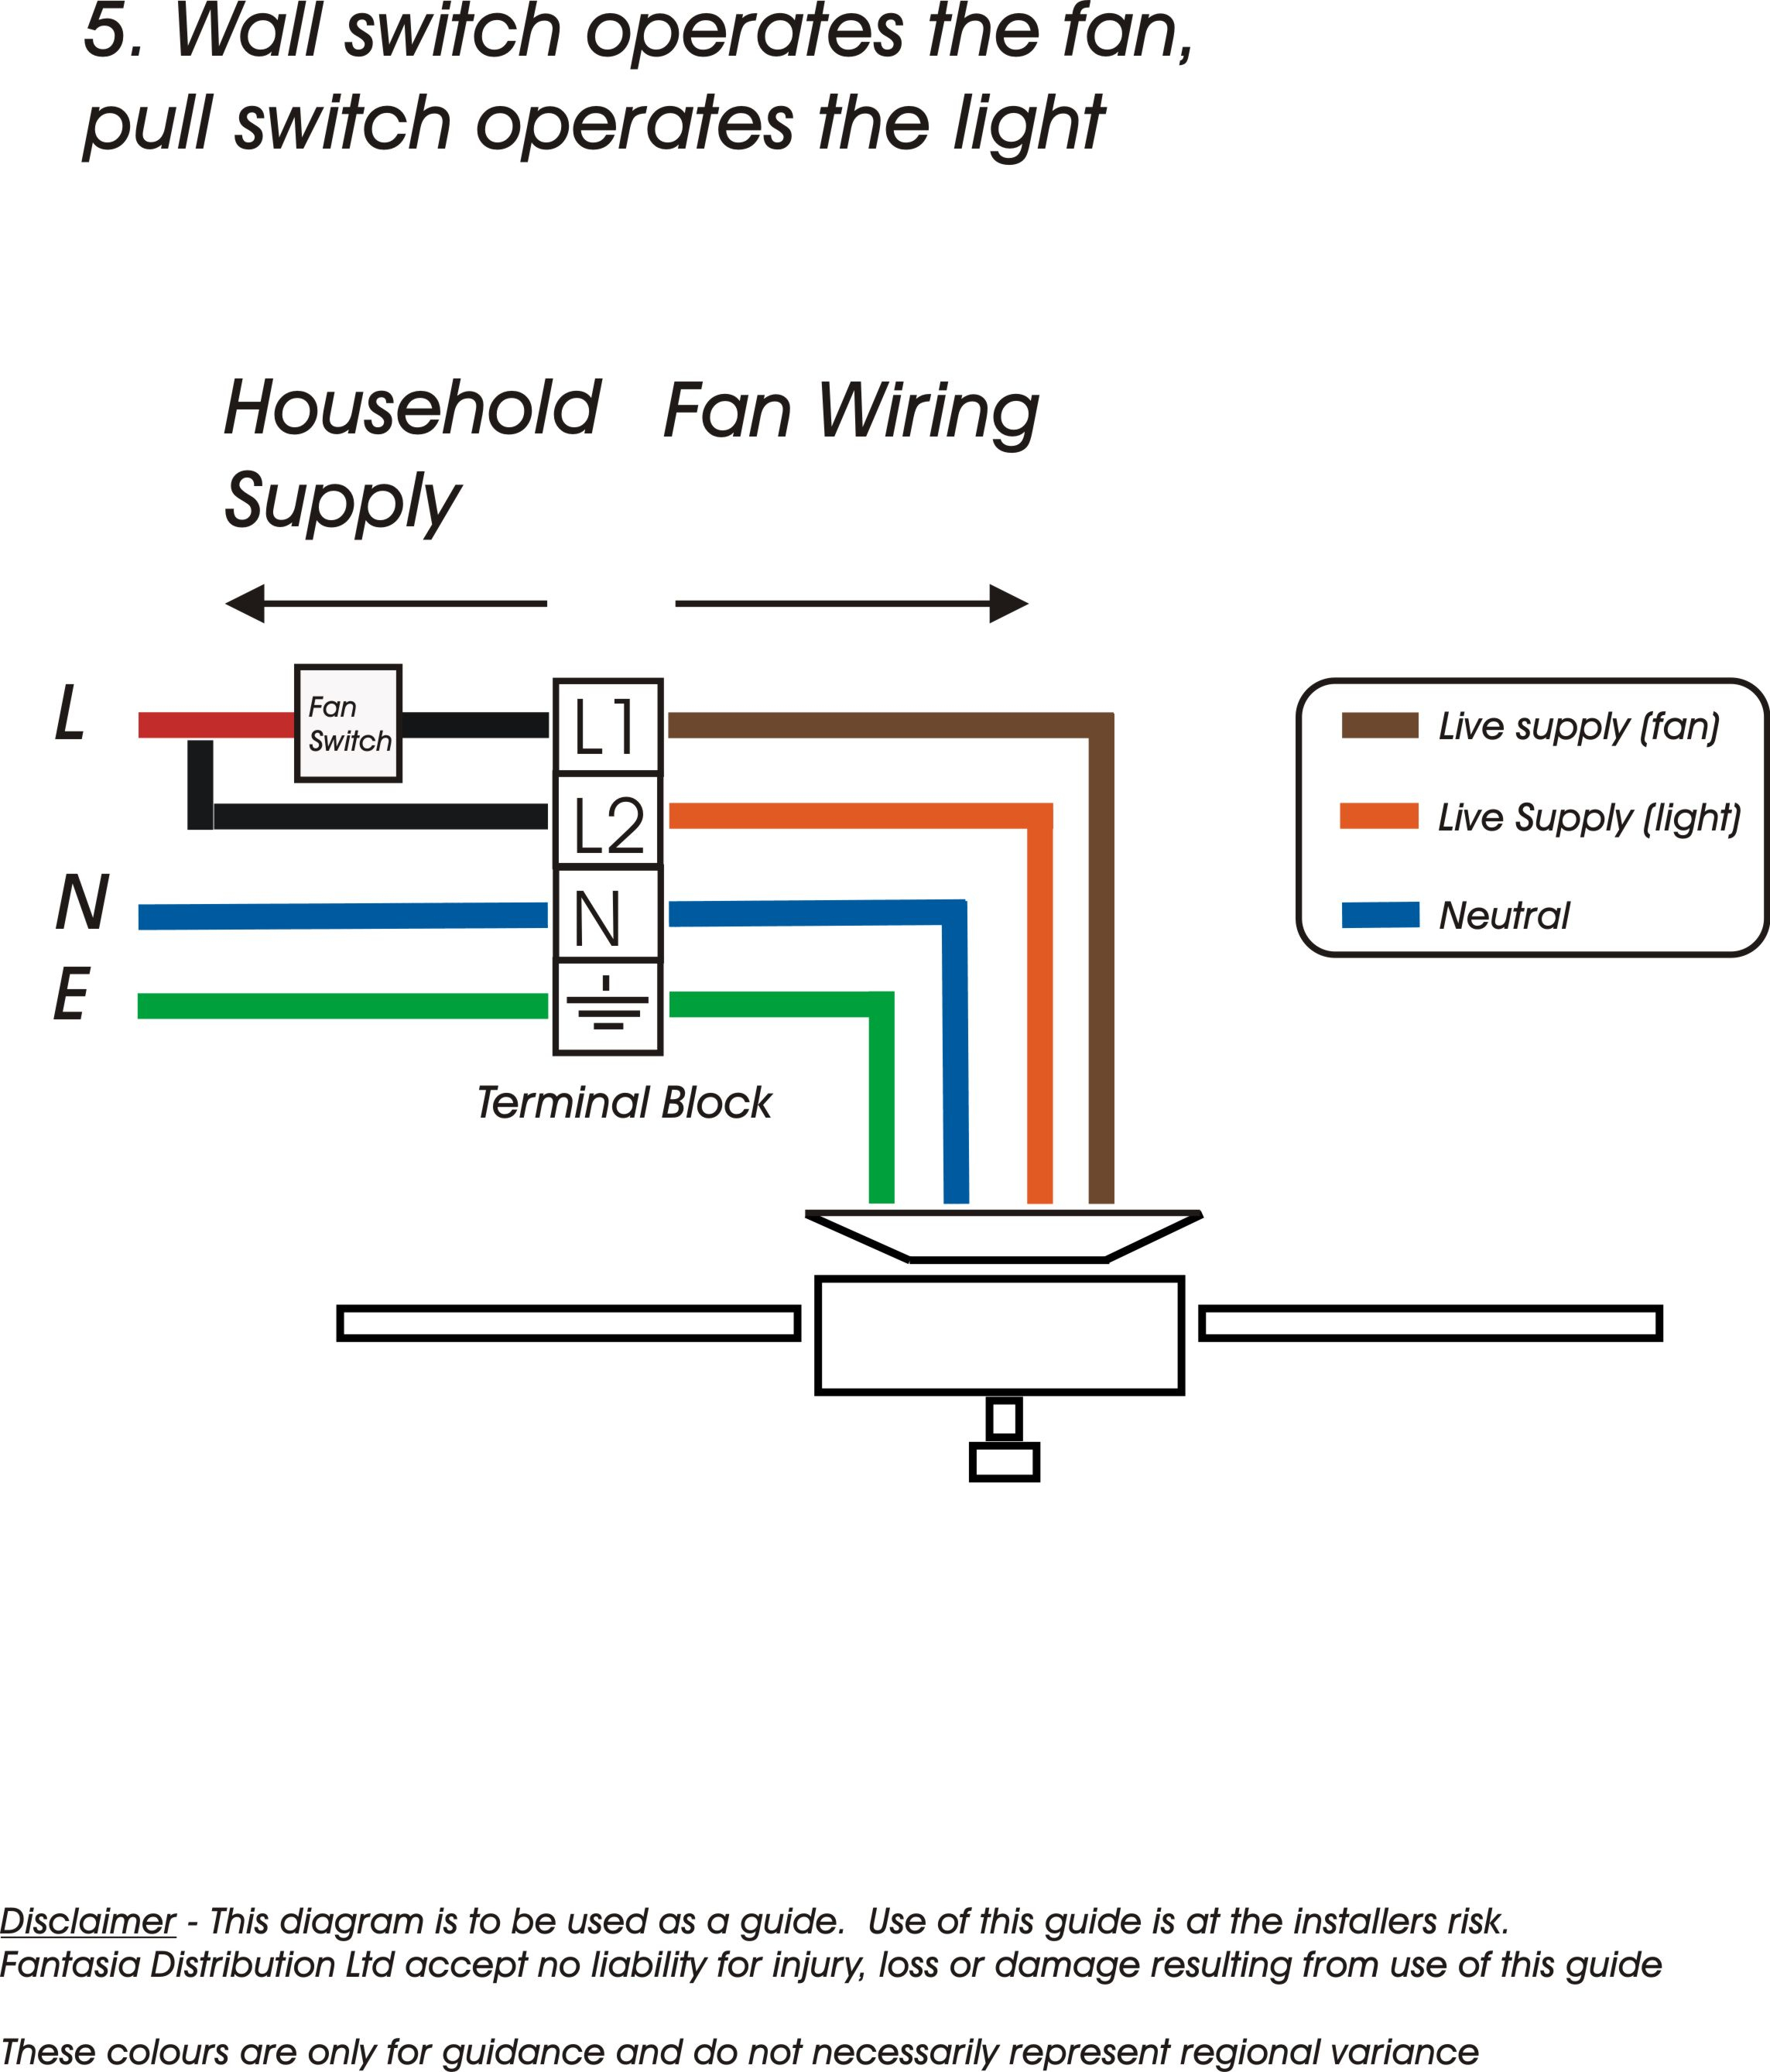 Fantastic Vent Fan Wiring Diagram | Wiring Diagram - Fantastic Vent Wiring Diagram